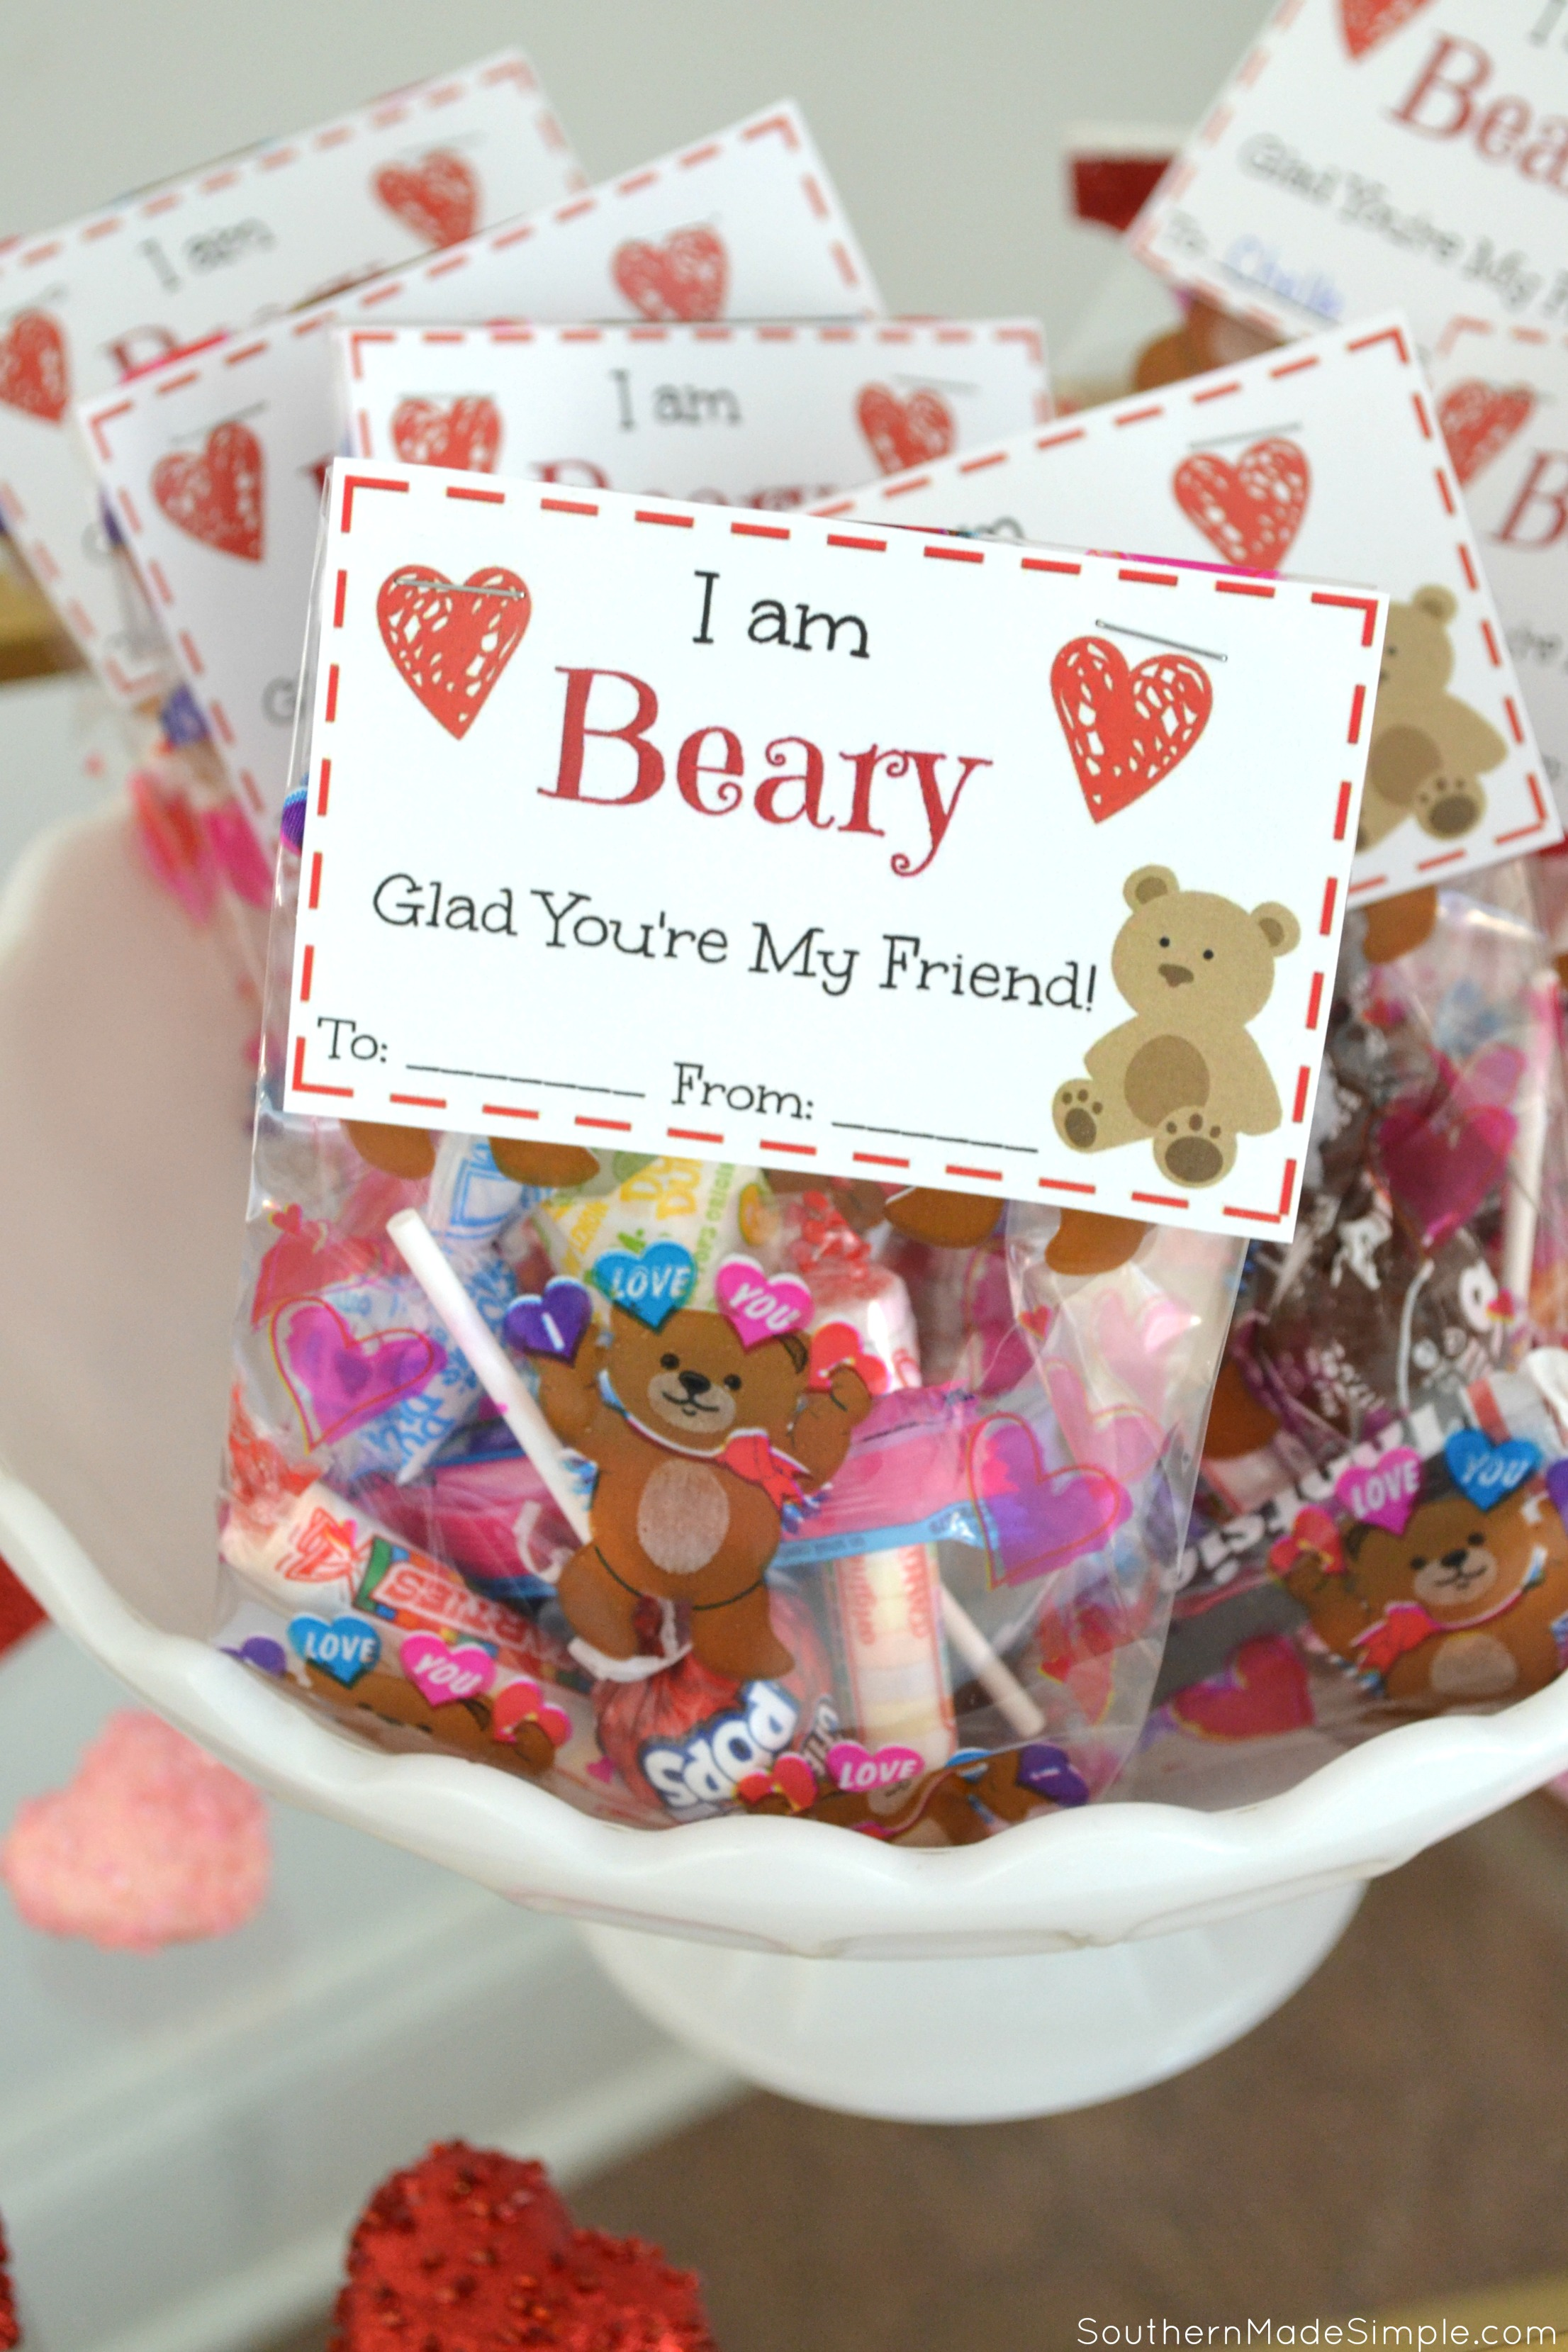 Free Printable: I'm Beary Glad You're My Friend Valentine